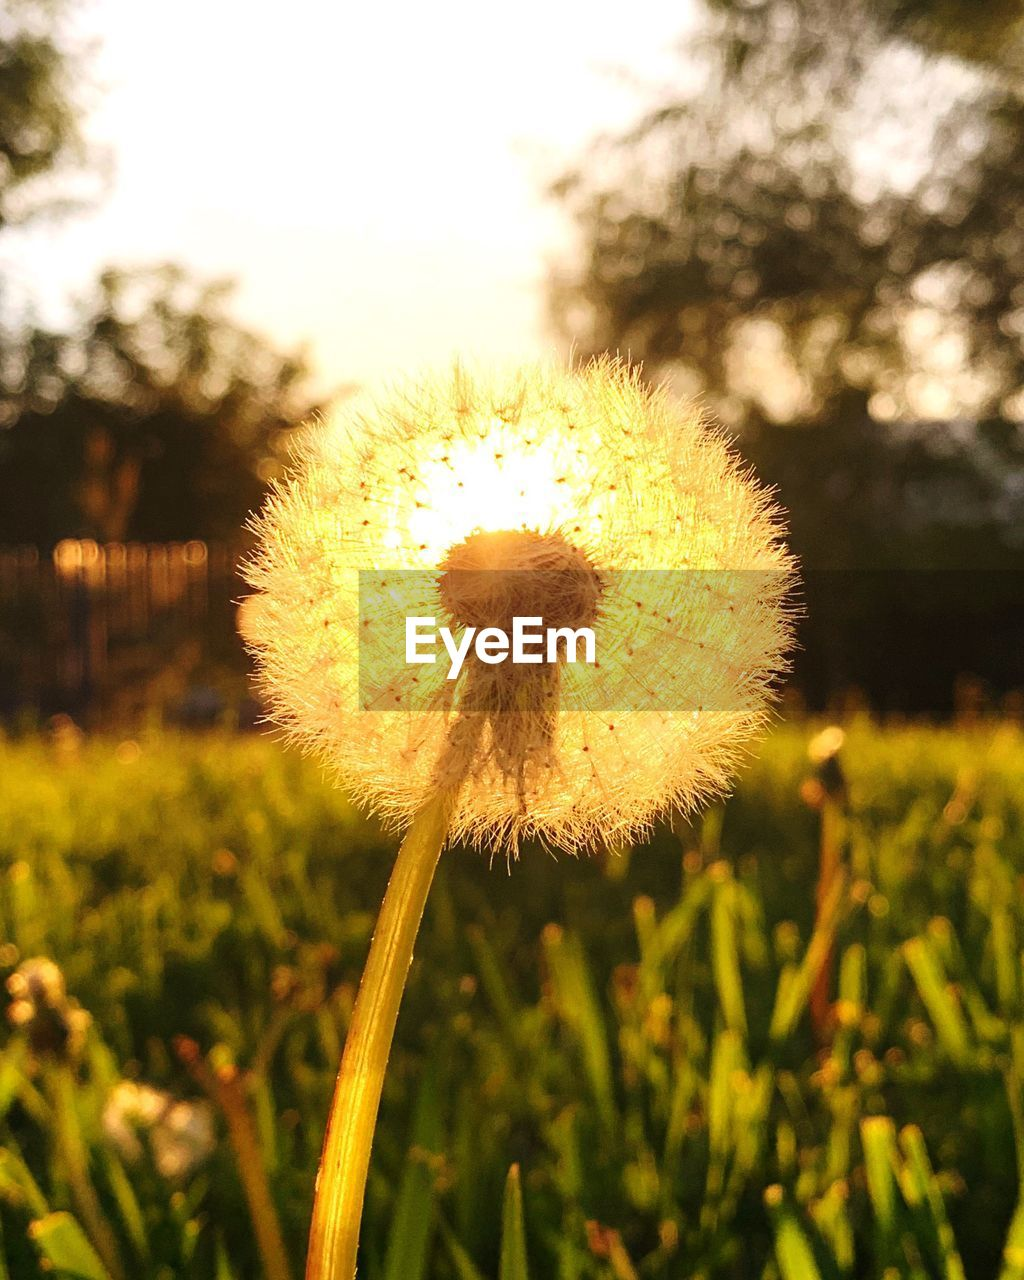 plant, flower, growth, fragility, flowering plant, beauty in nature, vulnerability, freshness, close-up, dandelion, nature, focus on foreground, no people, flower head, plant stem, field, inflorescence, day, yellow, softness, outdoors, dandelion seed